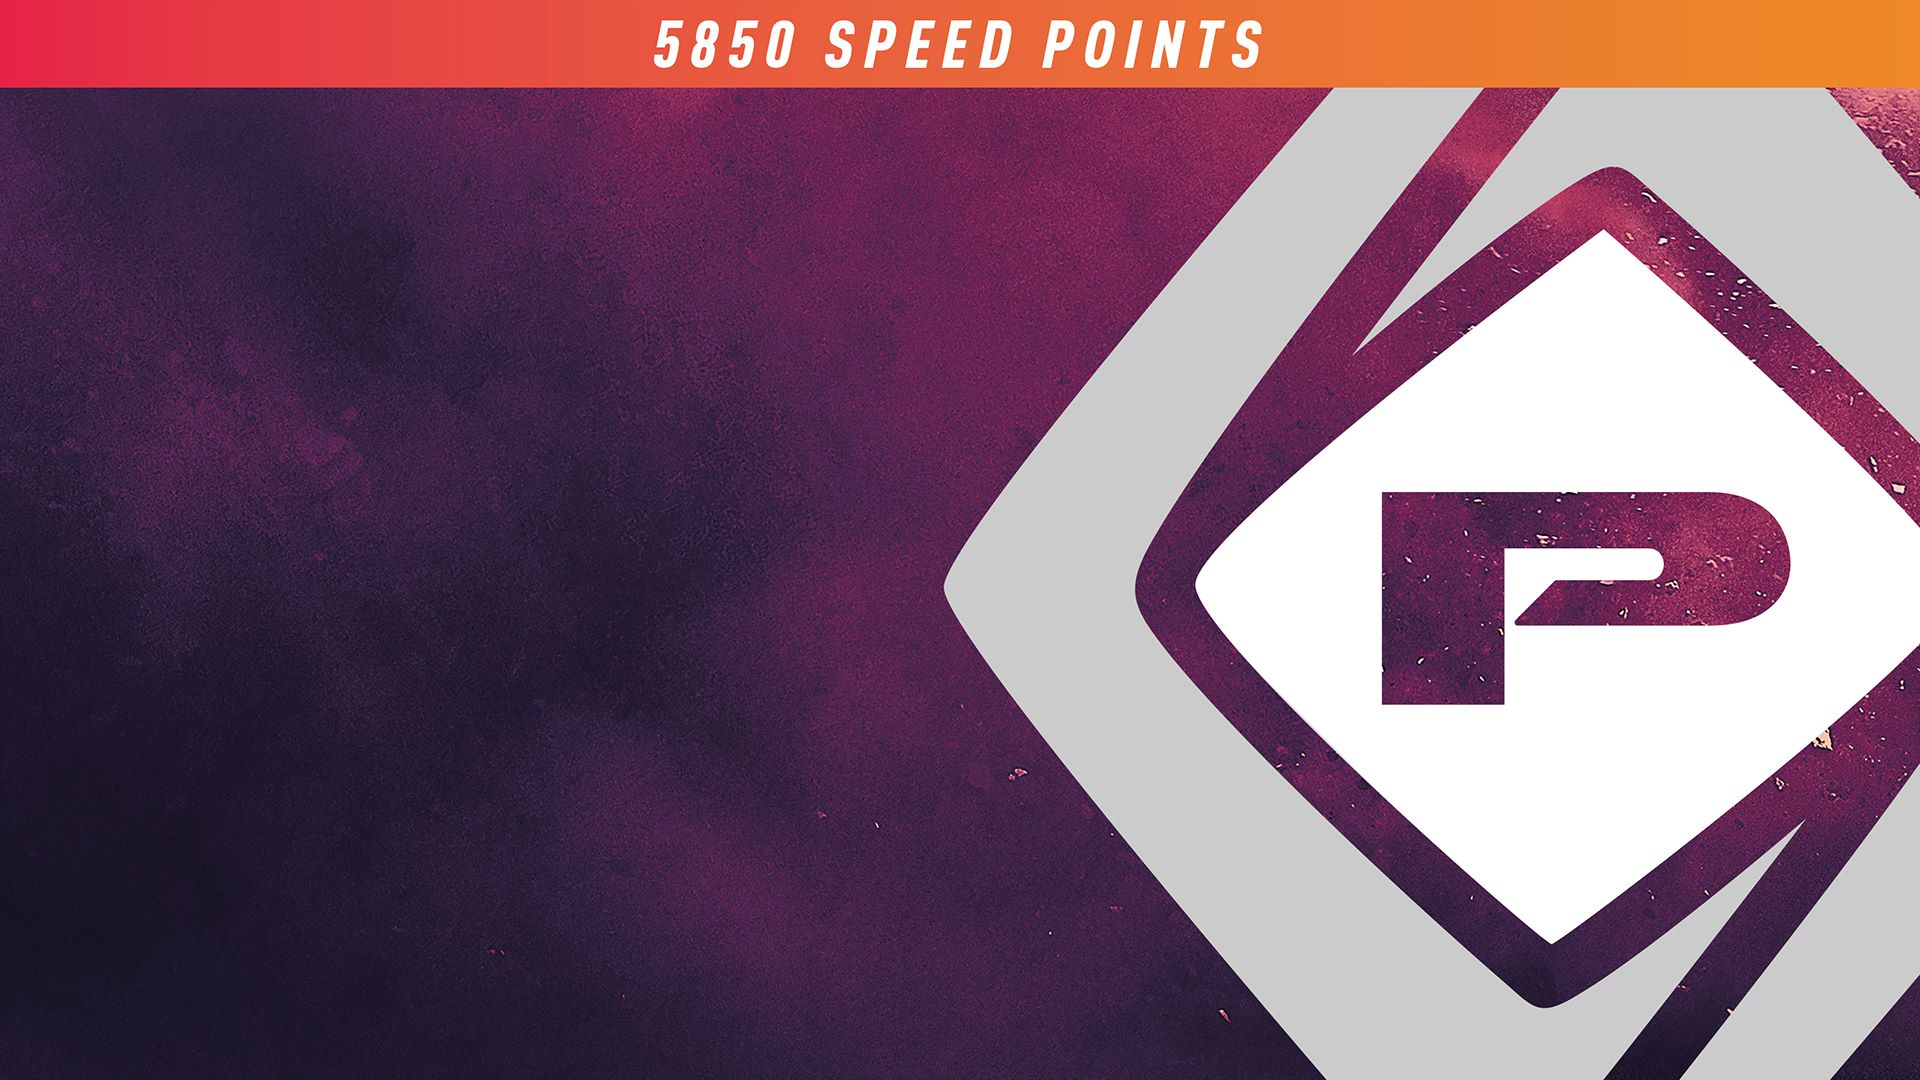 NFS Payback 5.850 Speed-Points